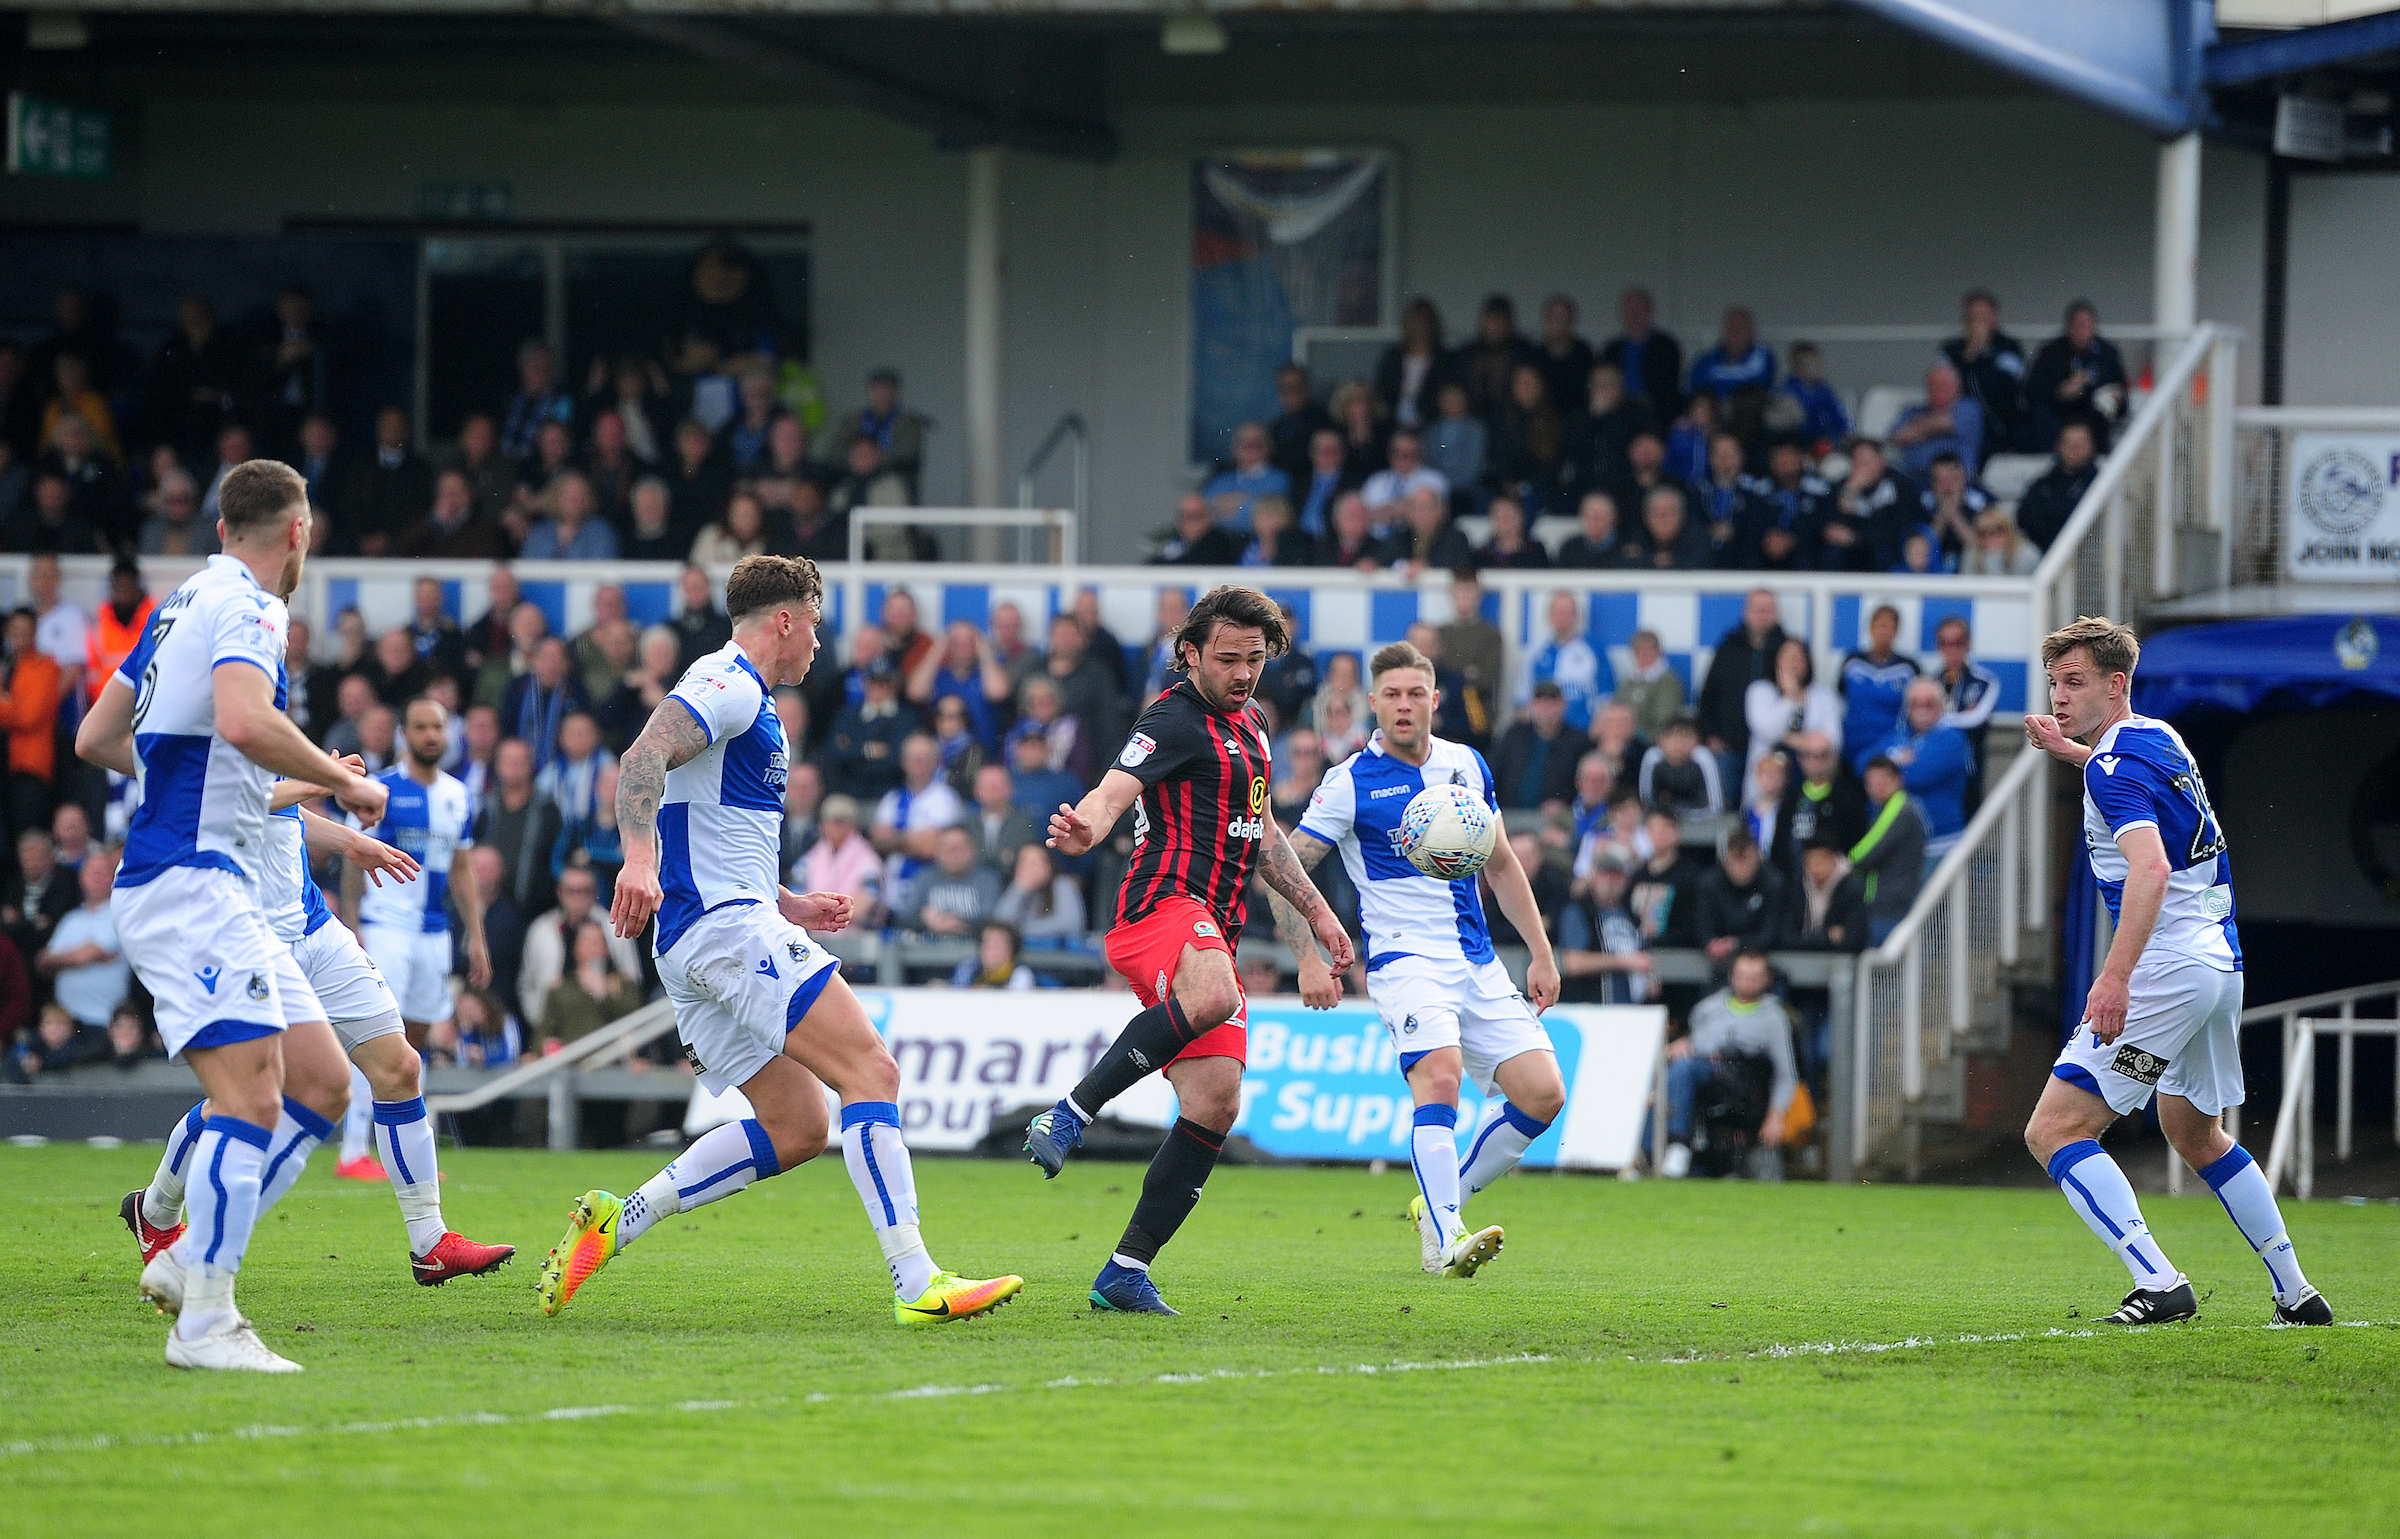 Rovers squandered a number of good openings in the draw at Bristol Rovers